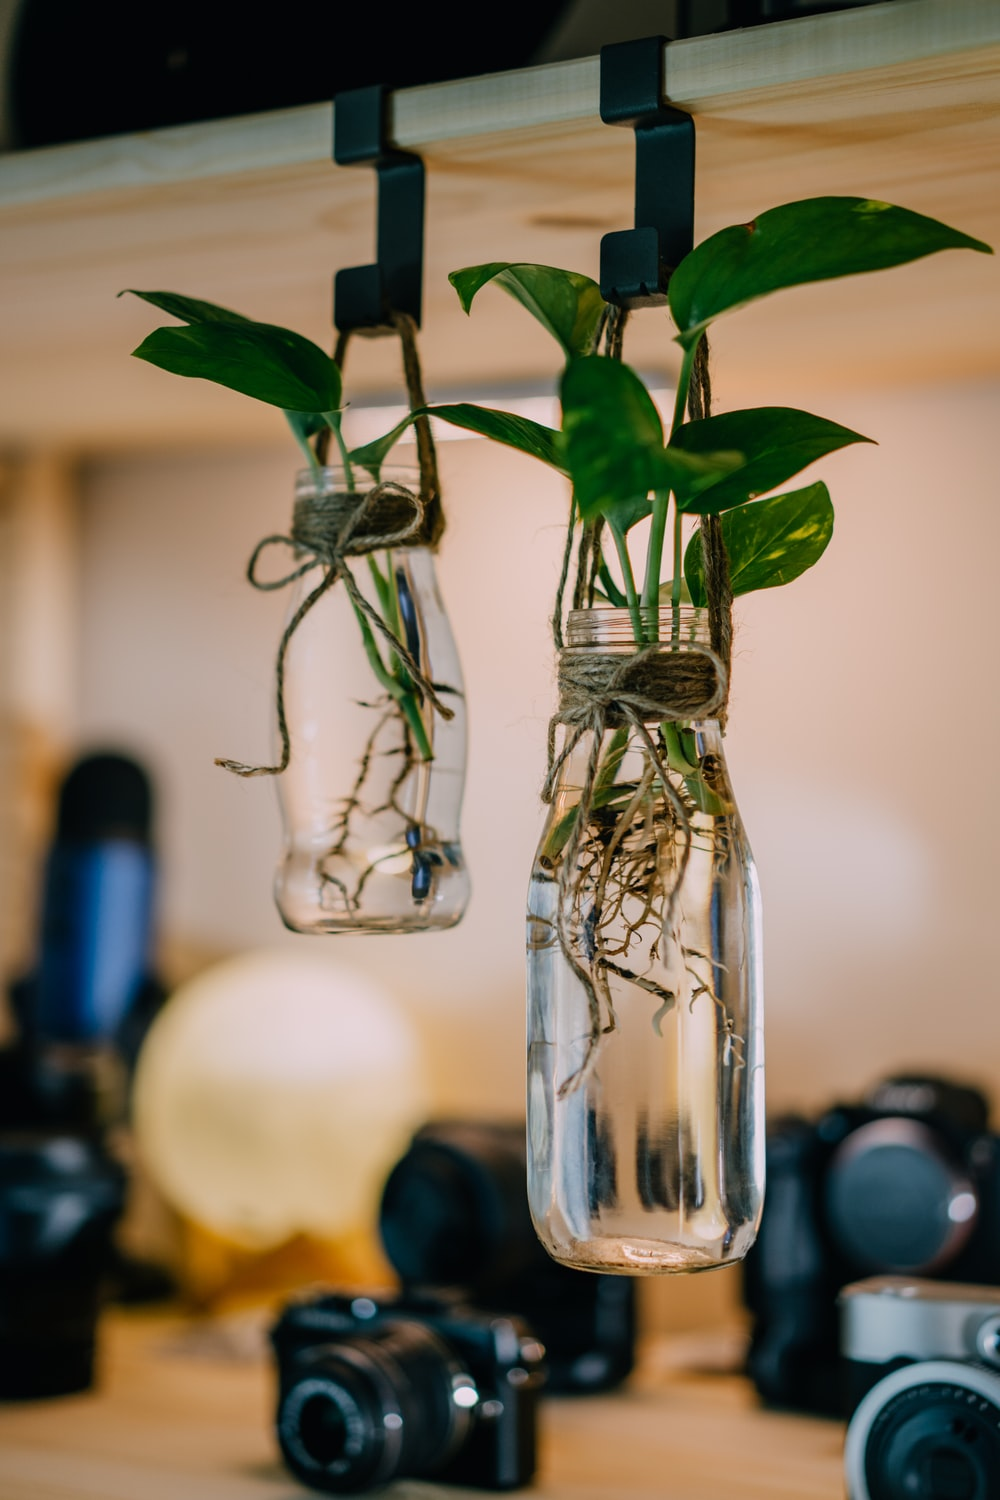 two hanging glass jars with plants